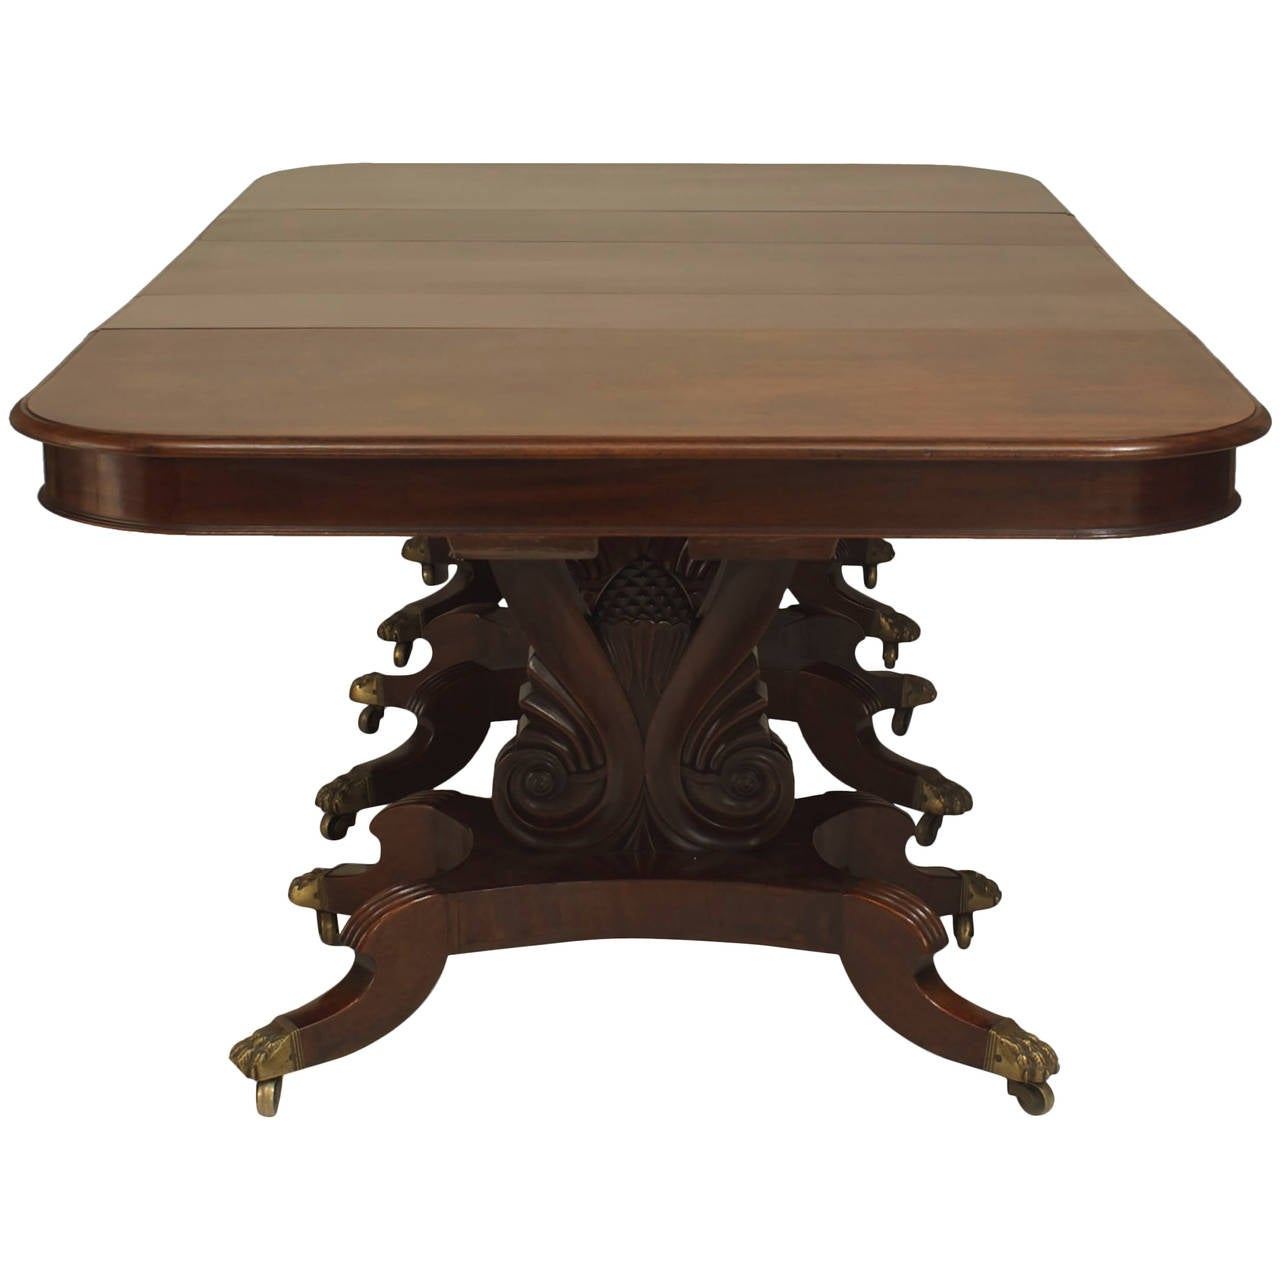 American Empire Extending Mahogany Dining Table 1